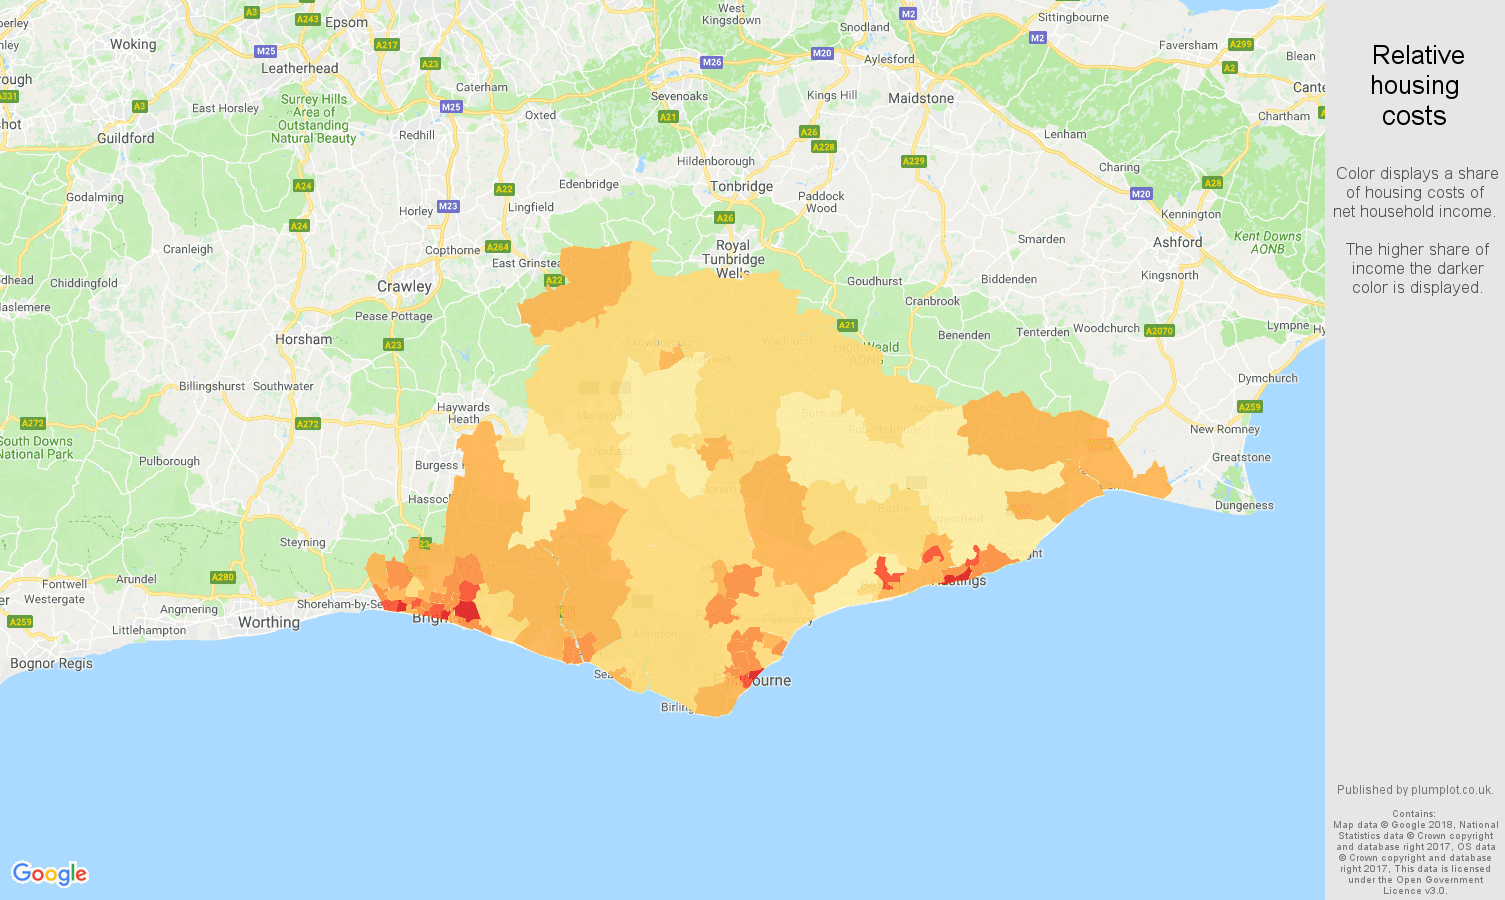 East Sussex relative housing costs map